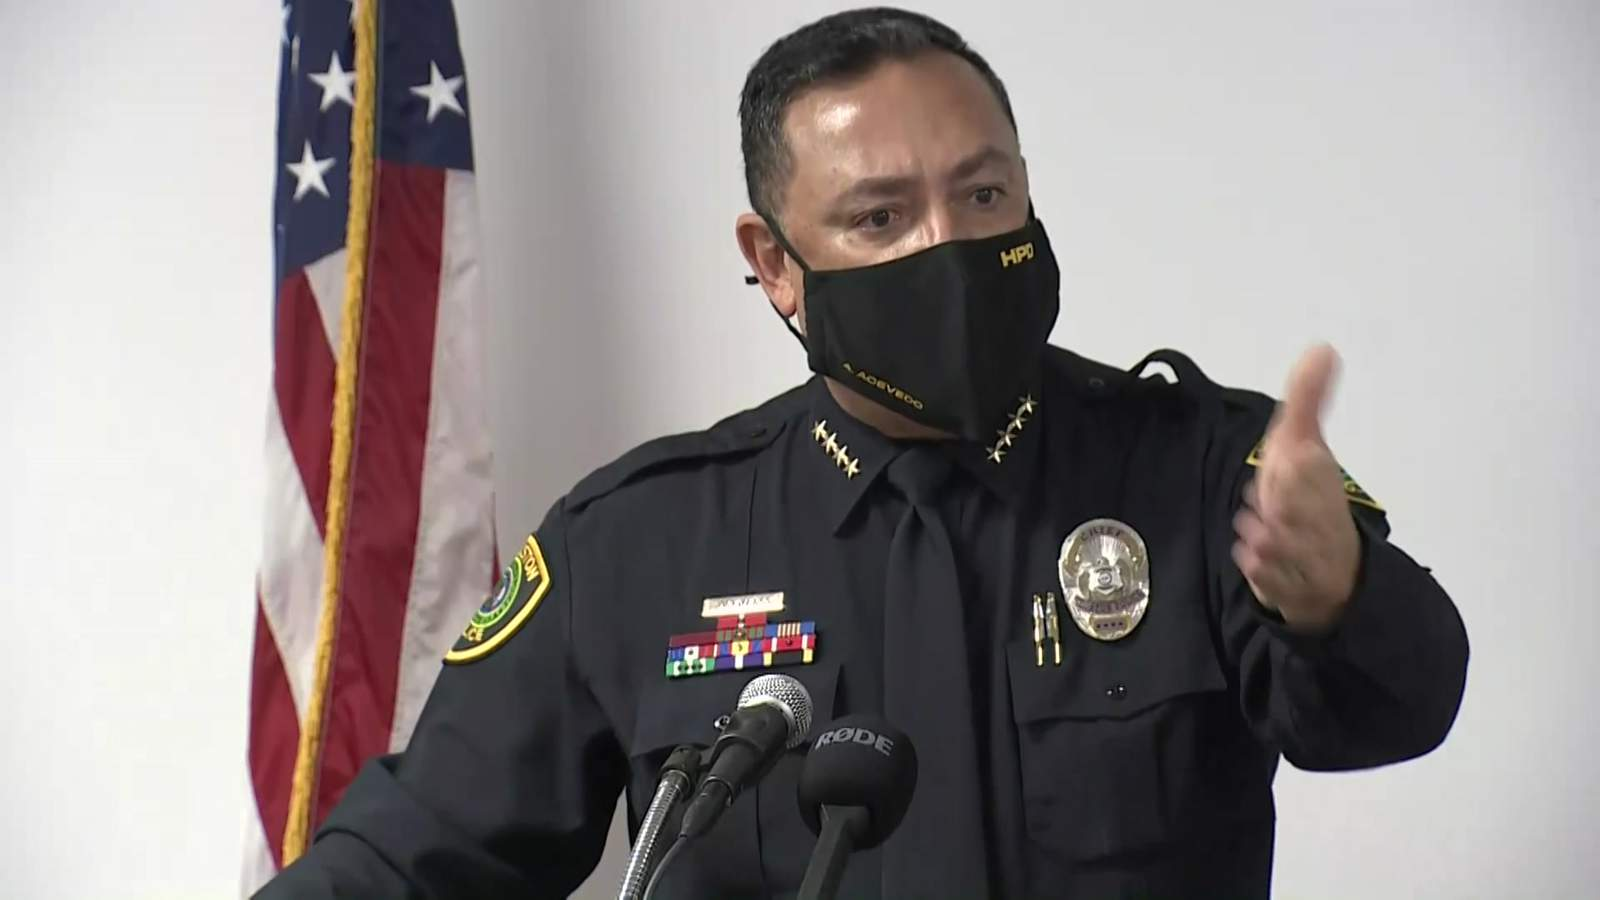 'You're subject to arrest for criminal trespass': Acevedo issues message regarding private businesses, masks